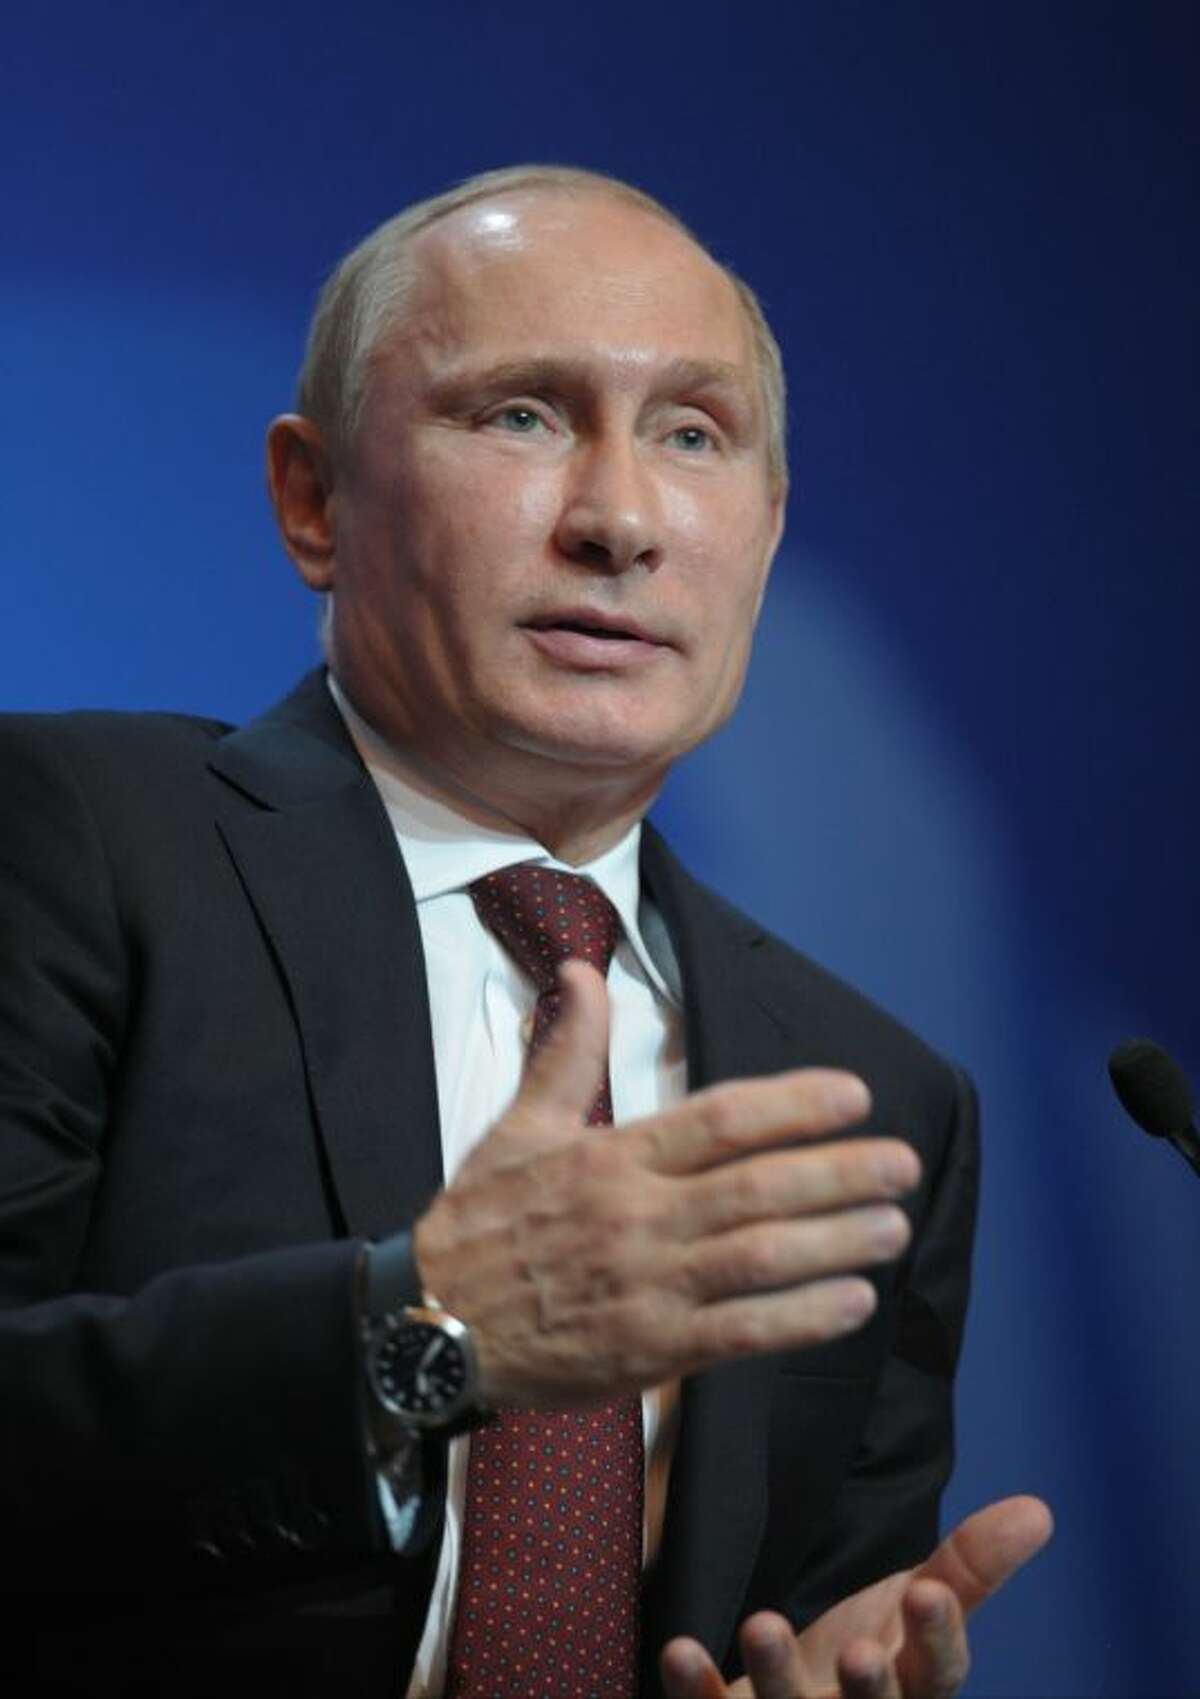 Russian President Vladimir Putin speaks at the International Arctic Forum in Salekhard, a city 1,950 km (about 1,200 miles) northeast of Moscow just above the Arctic Circle, Russia, Wednesday, Sept. 25, 2013. Putin said Wednesday that Greenpeace activists apprehended after trying to scale an offshore oil platform aren't pirates, but defended the detention saying Coast Guard officers had no way of knowing who they were.(AP Photo/RIA-Novosti, Alexei Druzhinin, Presidential Press Service)